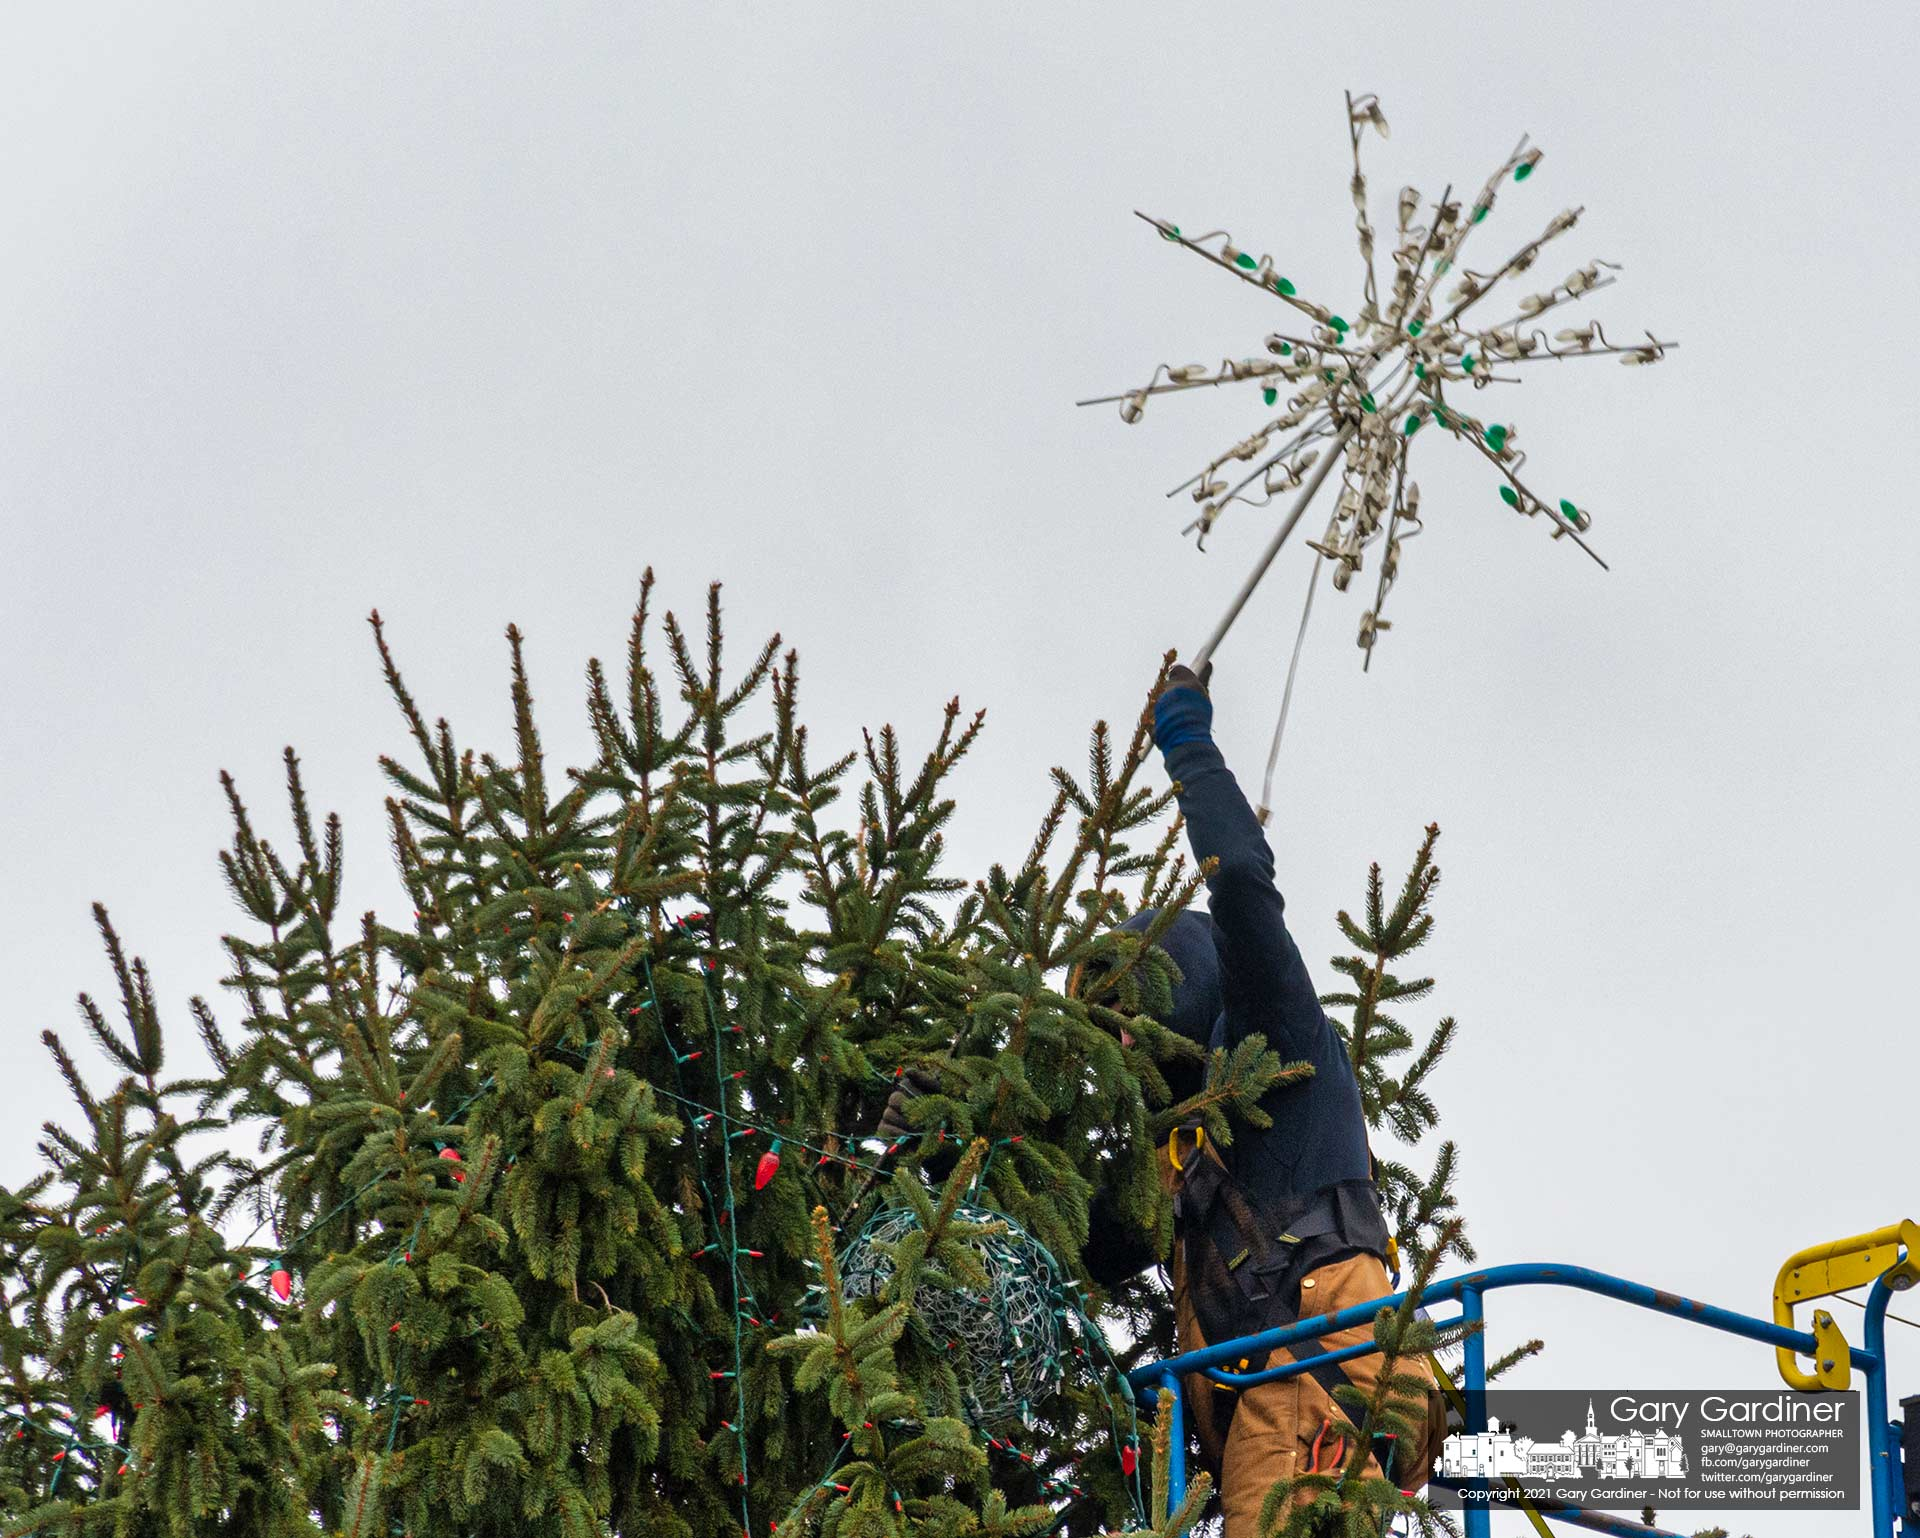 A city park worker removes the star from atop the Christmas tree on the civic green at city hall marking the end of the holiday season for a portion of Uptown. My Final Photo for Jan. 4, 2021.